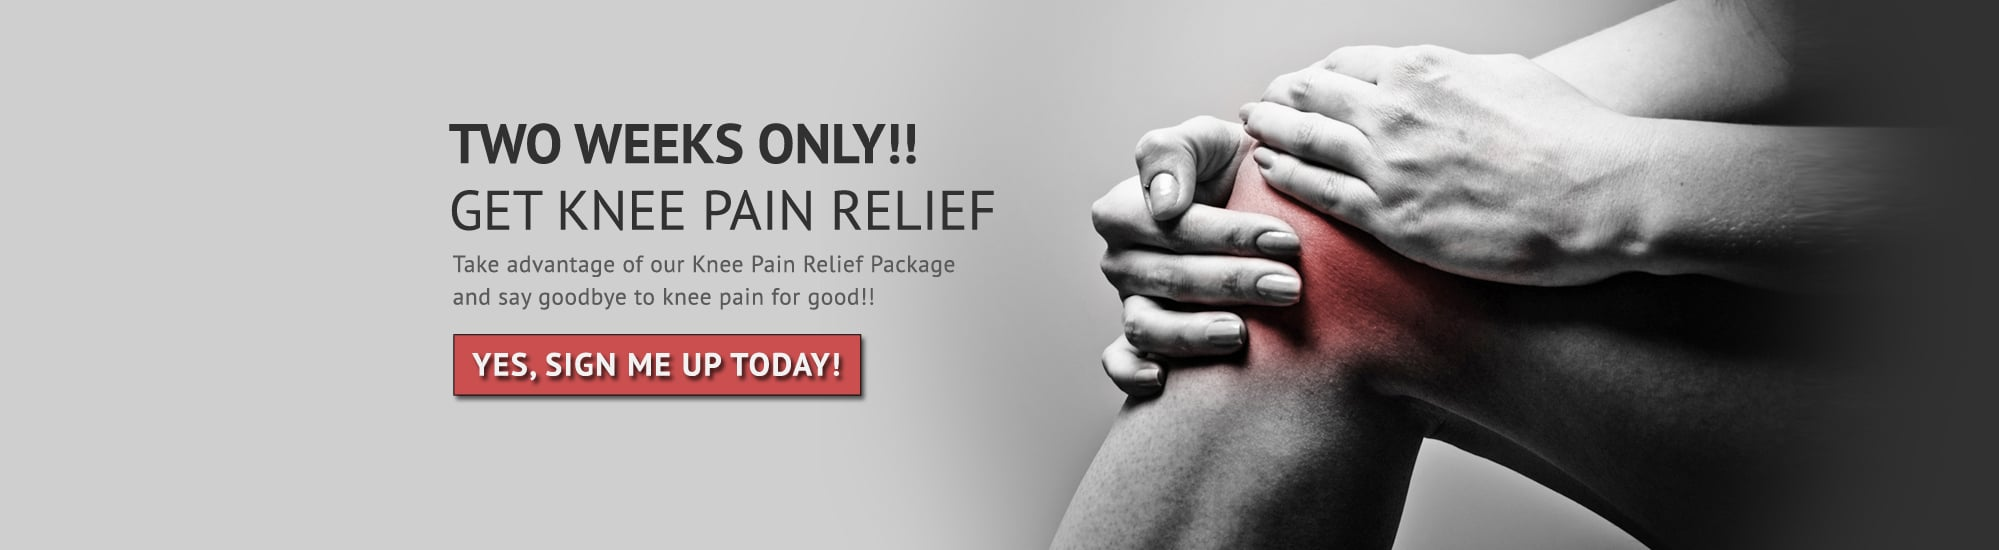 knee pain relief landing page slider